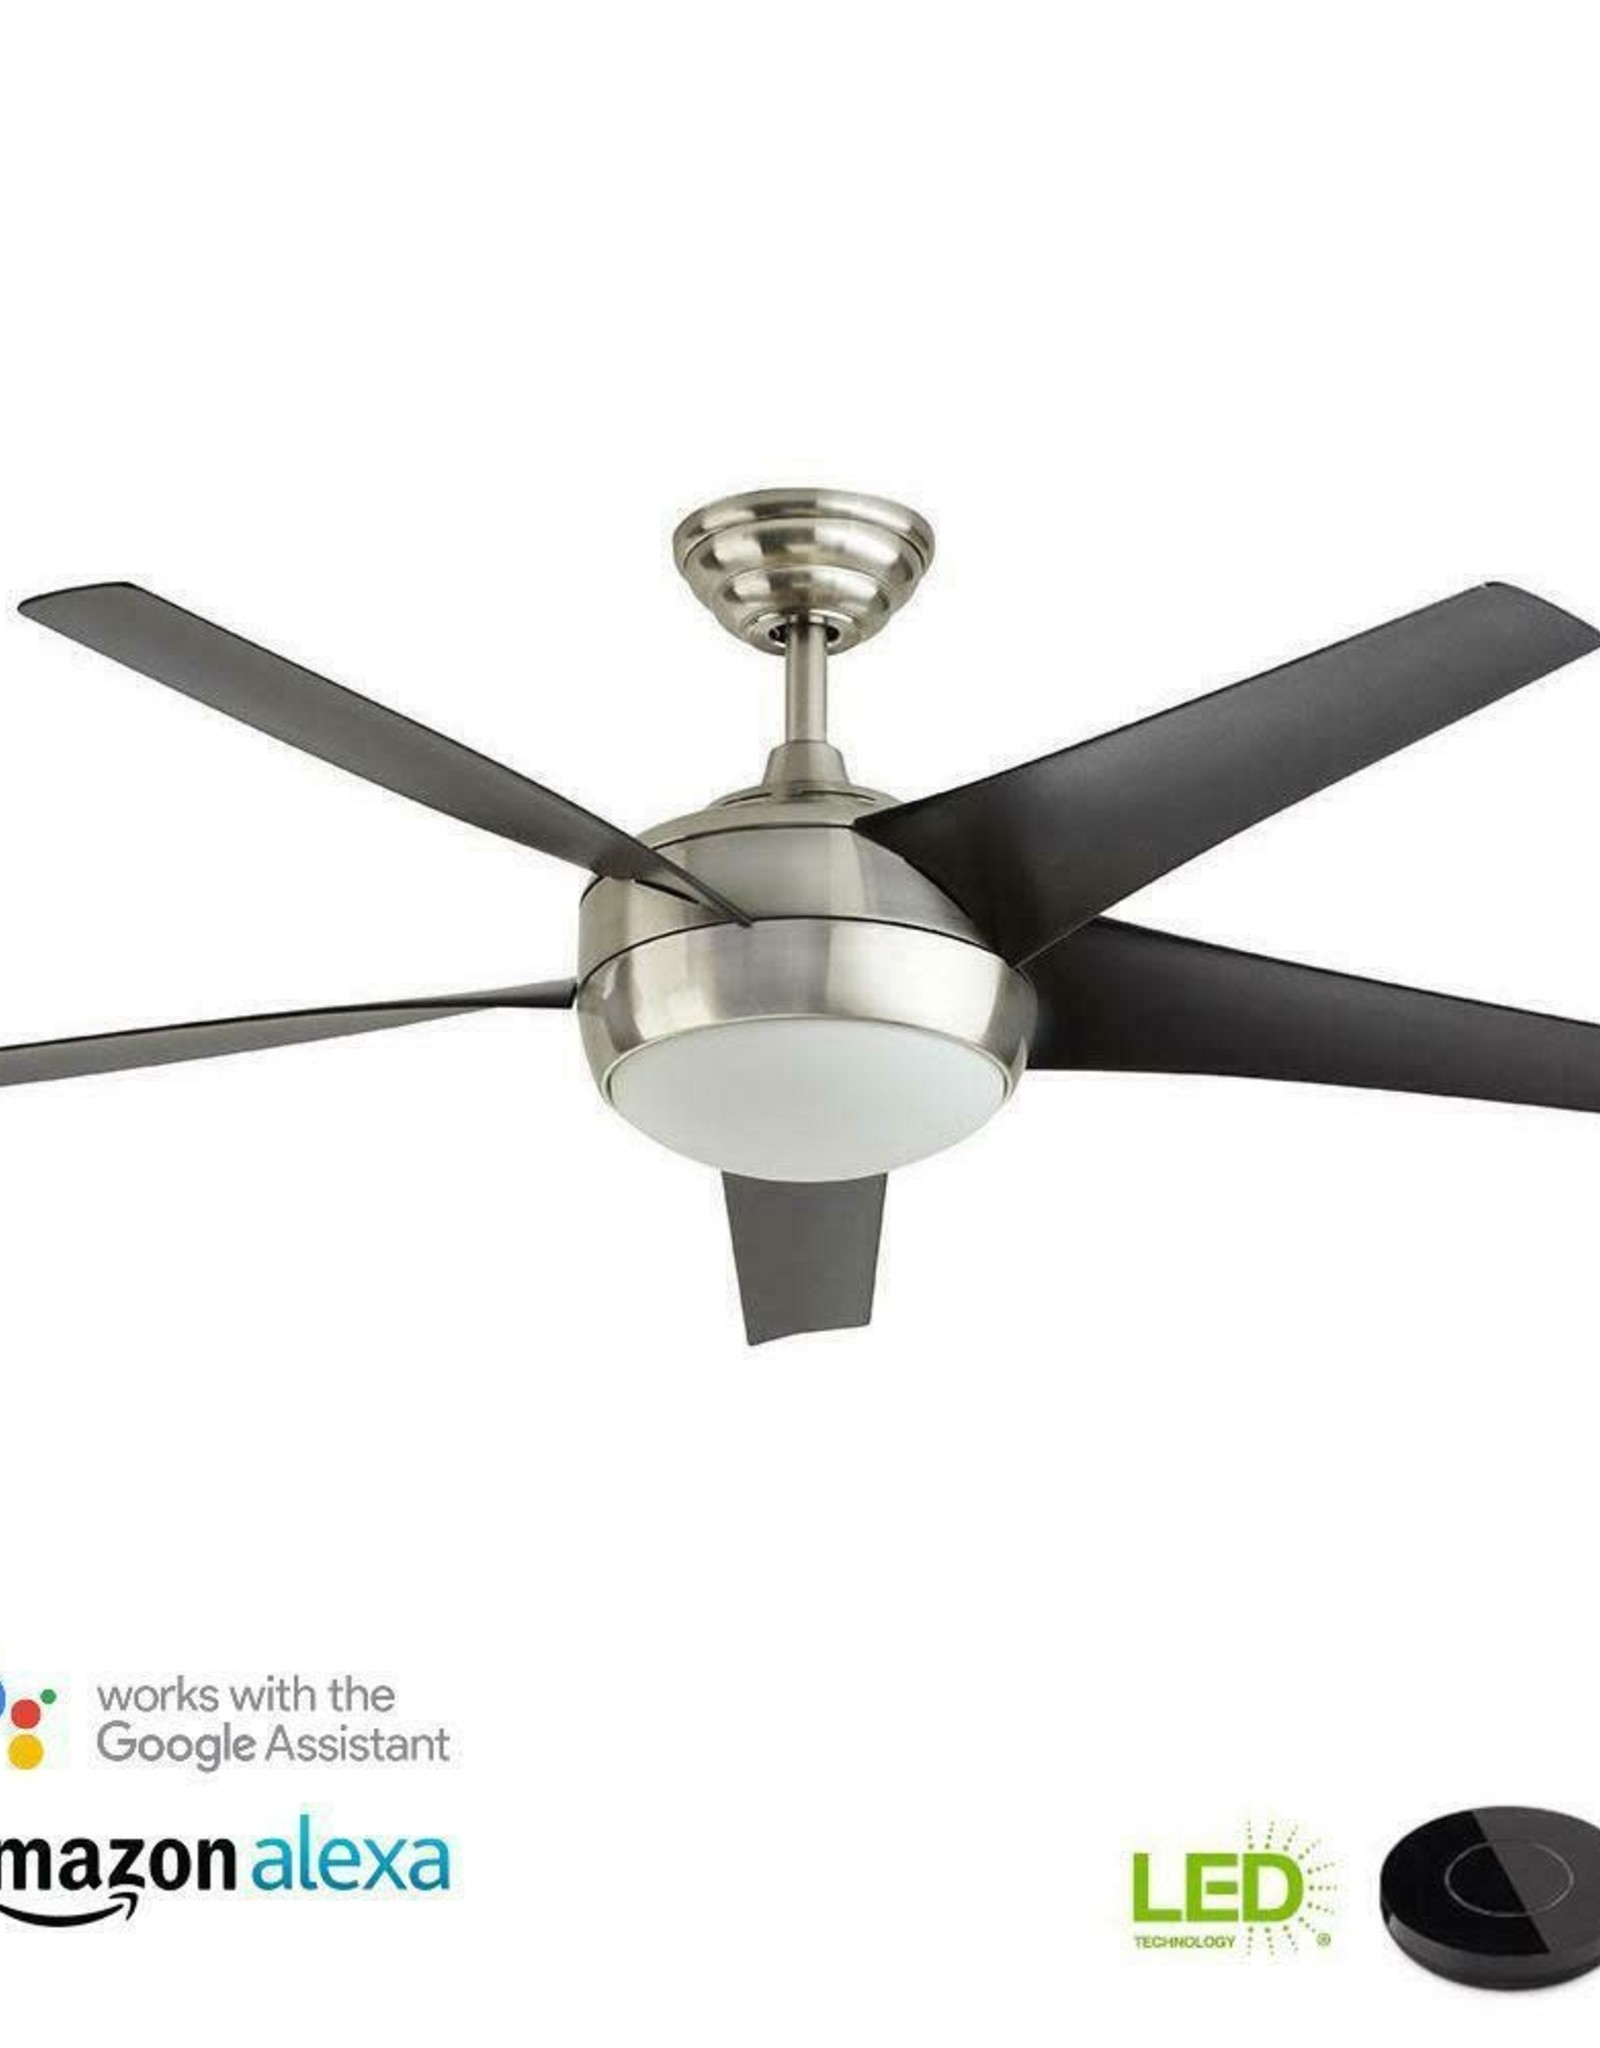 Home Decorators Collection Windward IV 52 in. LED Brushed Nickel Ceiling Fan with Light Kit Works with Google Assistant and Alexa